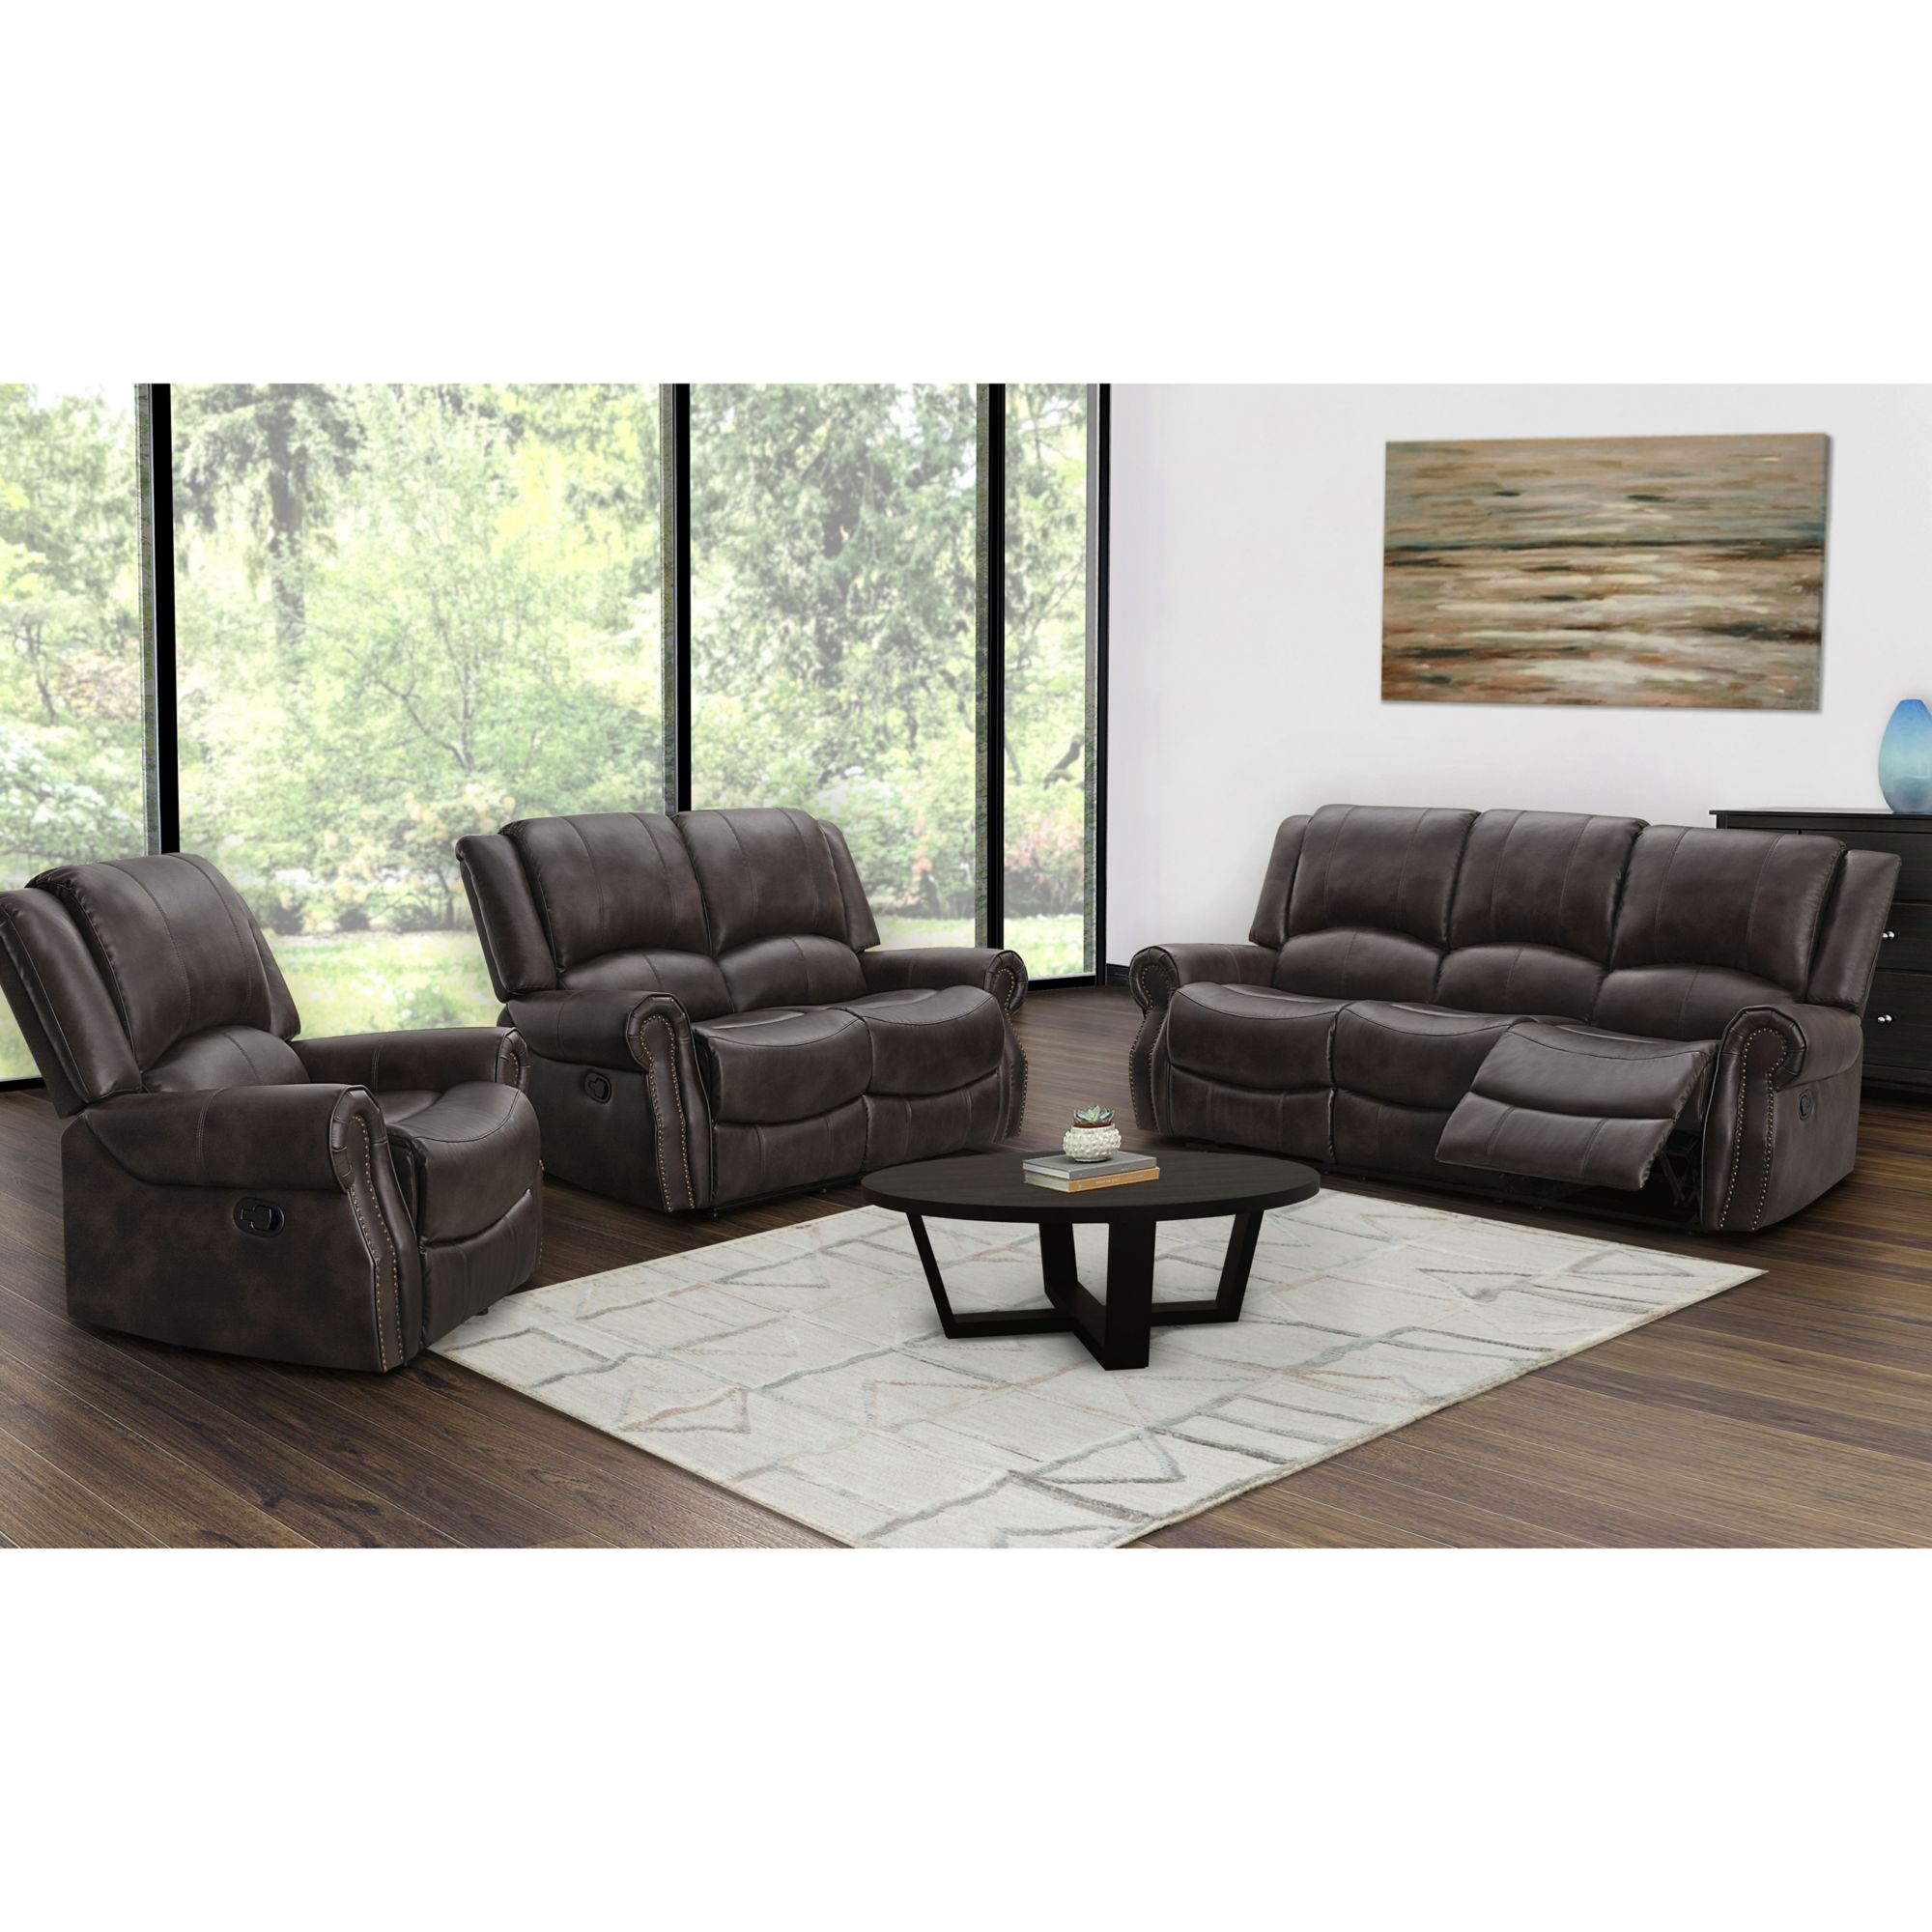 abbyson living davidson 3 pc reclining set dark brown bjs rh bjs com